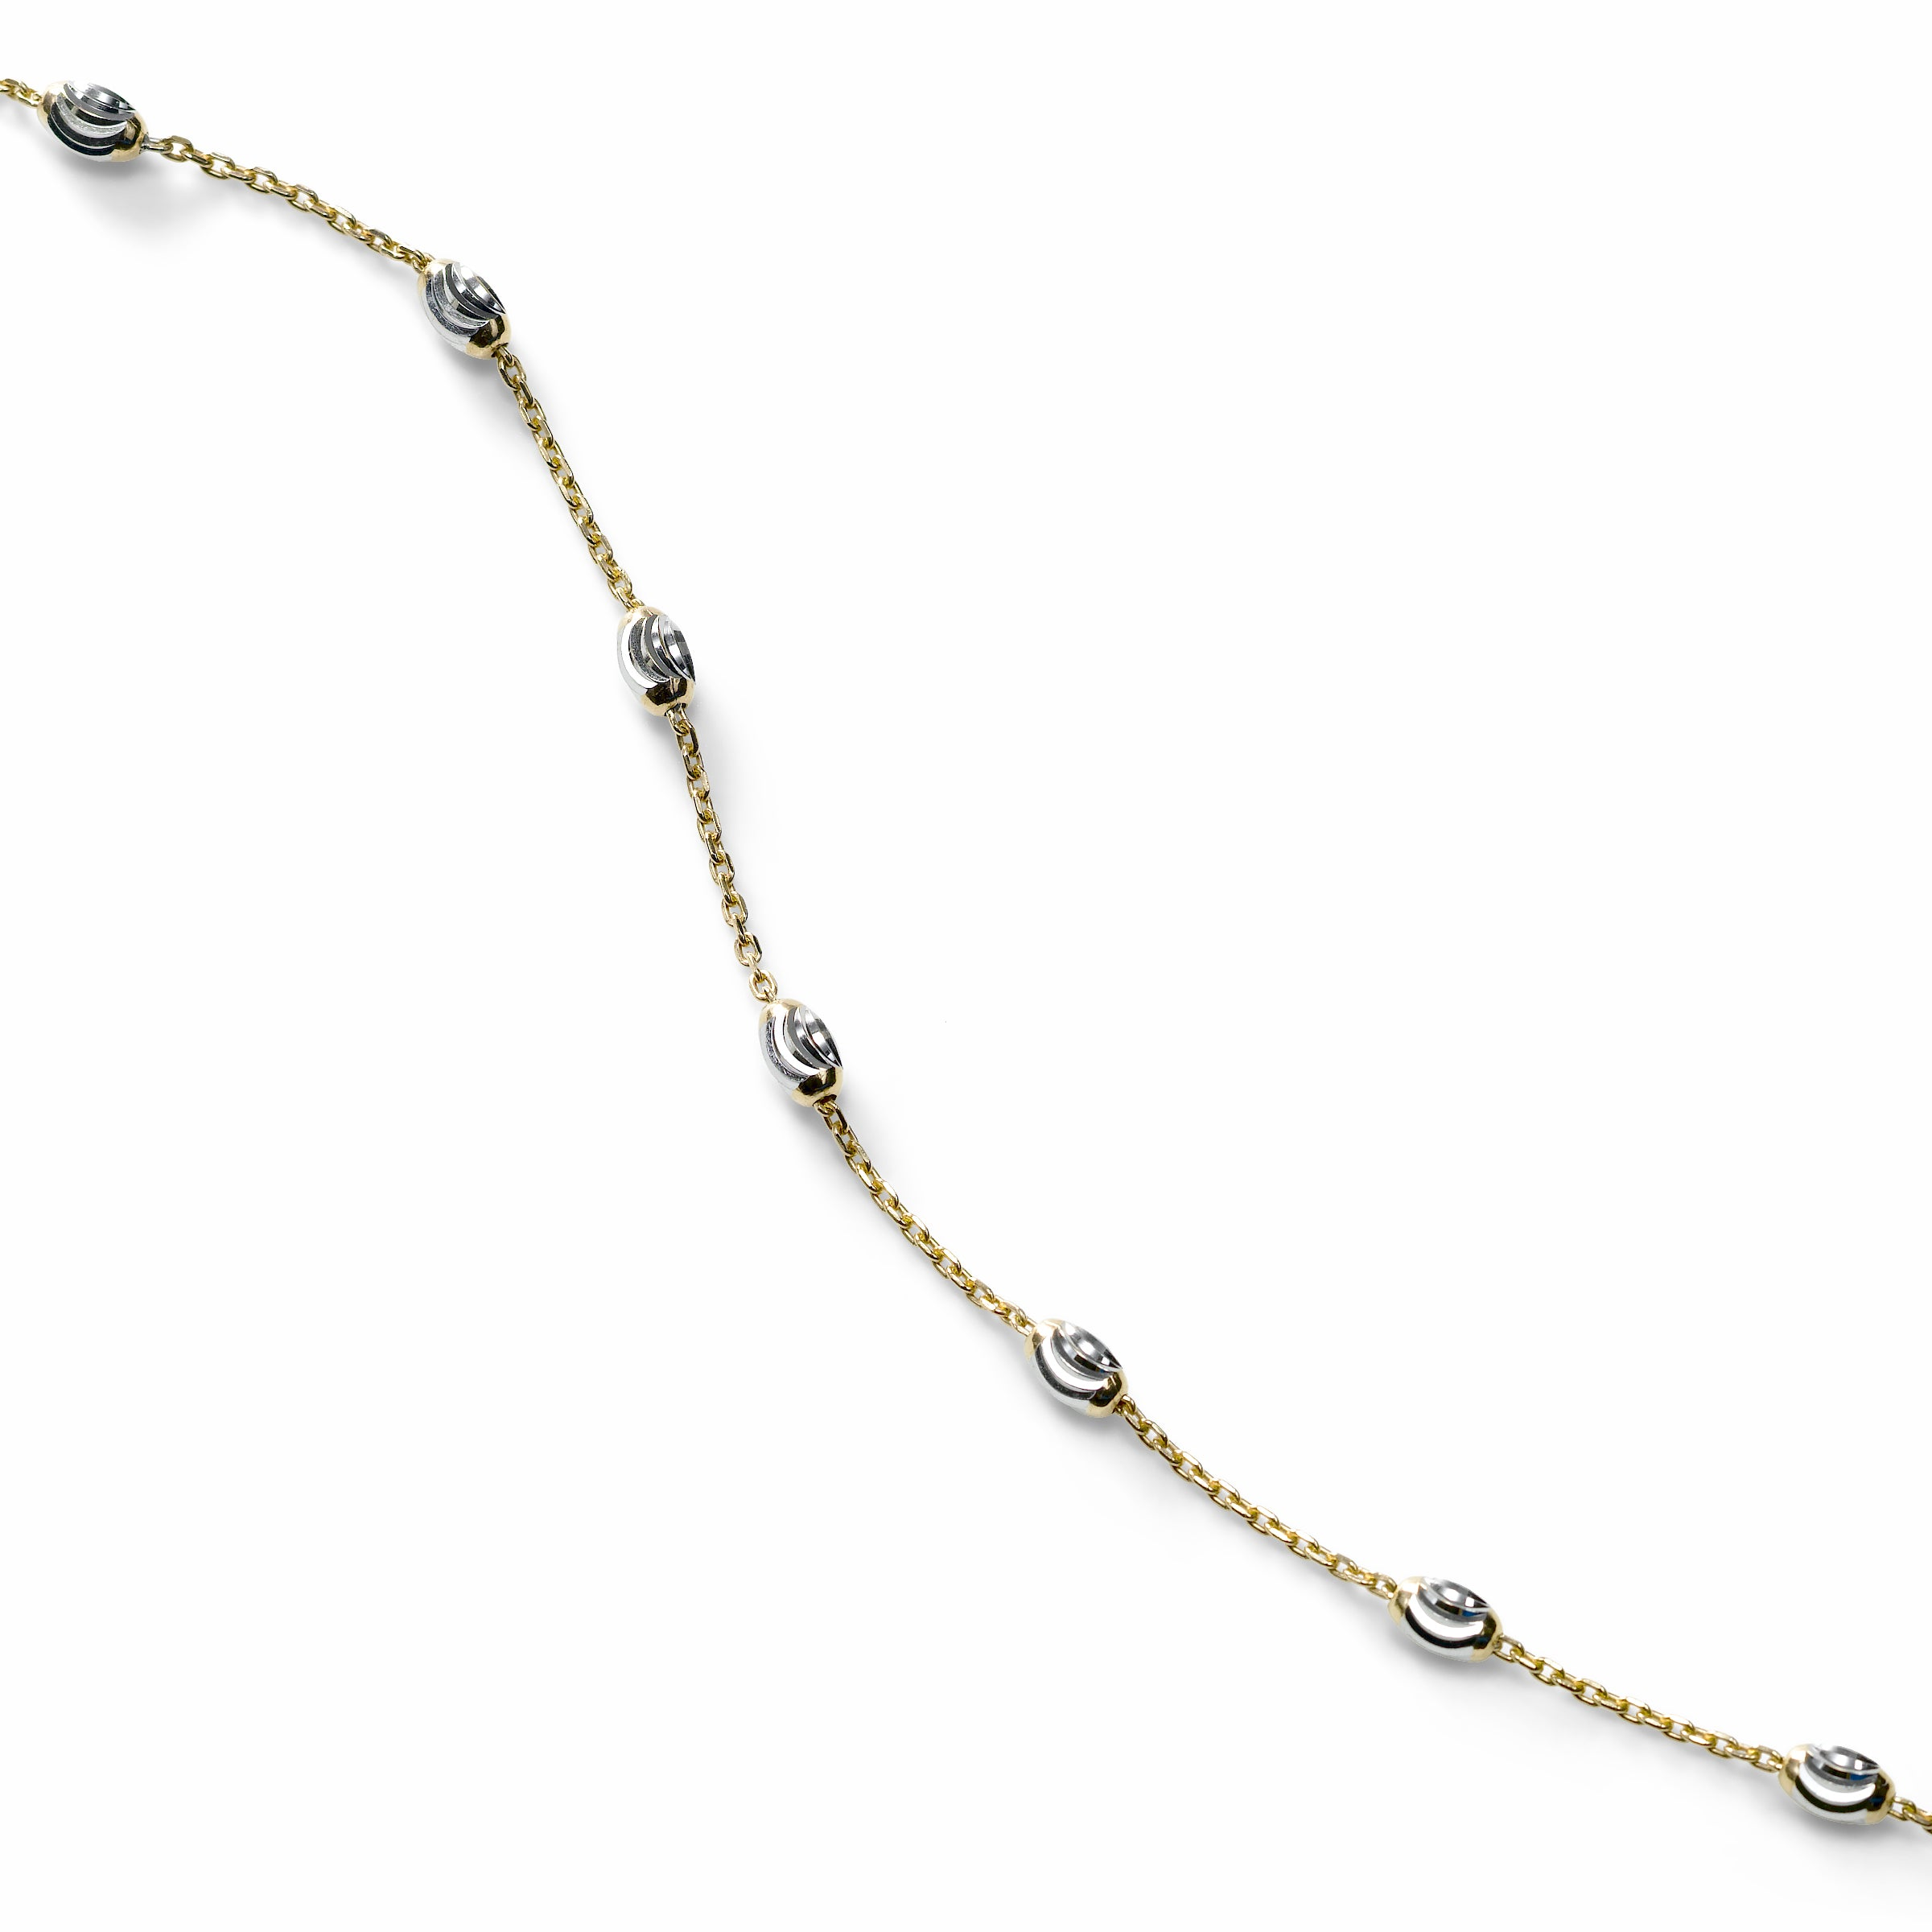 Oval Bead Ankle Bracelet, Sterling with 18K Yellow Gold Plating